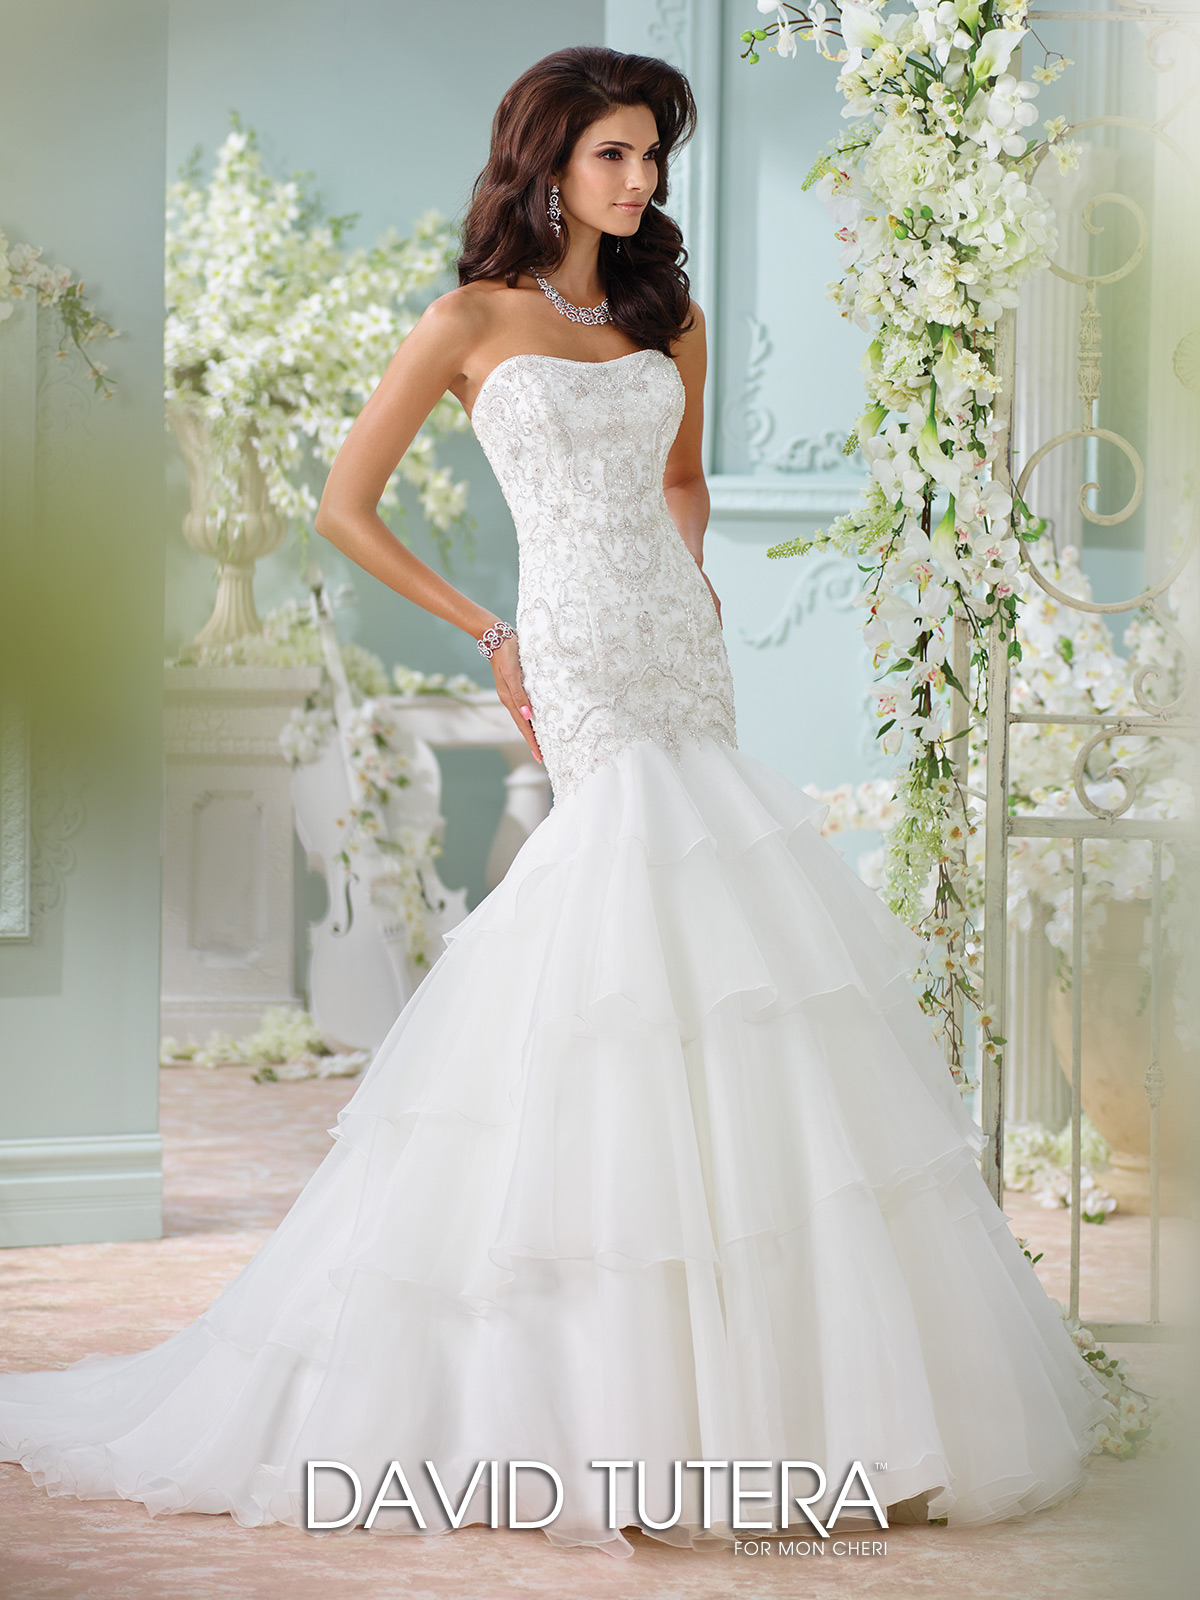 116207-Ottawa-bridal-shop-wedding-dresses-2017.